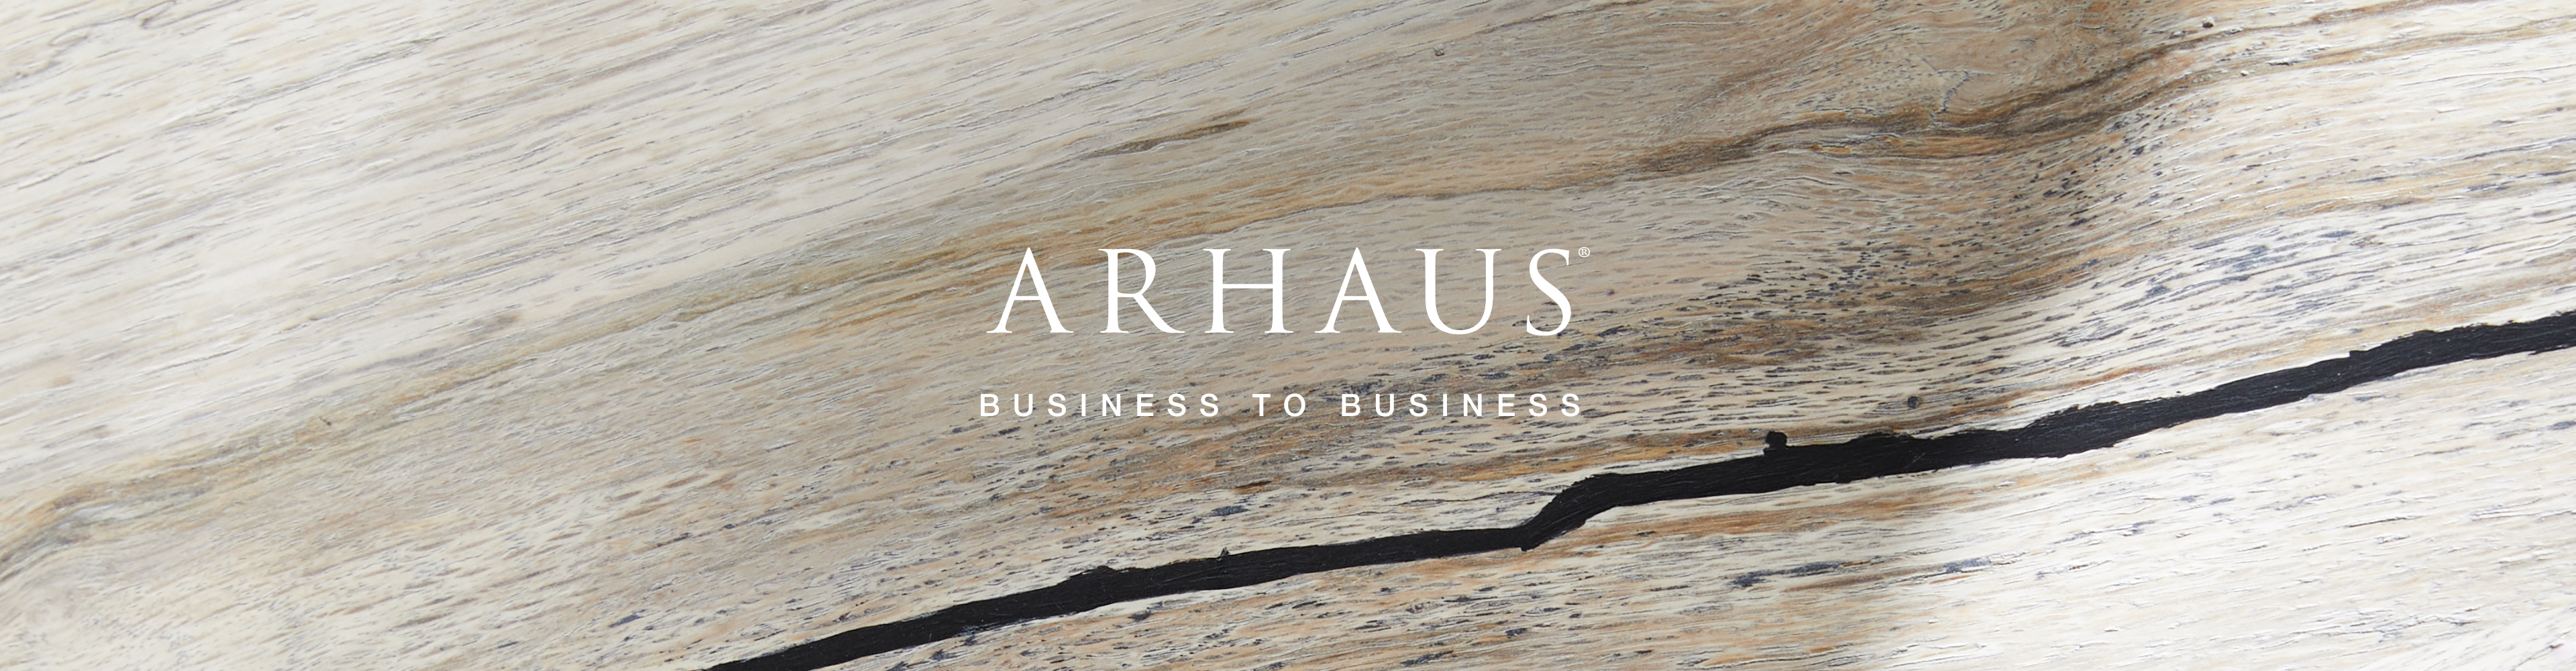 Arhaus Business to Business